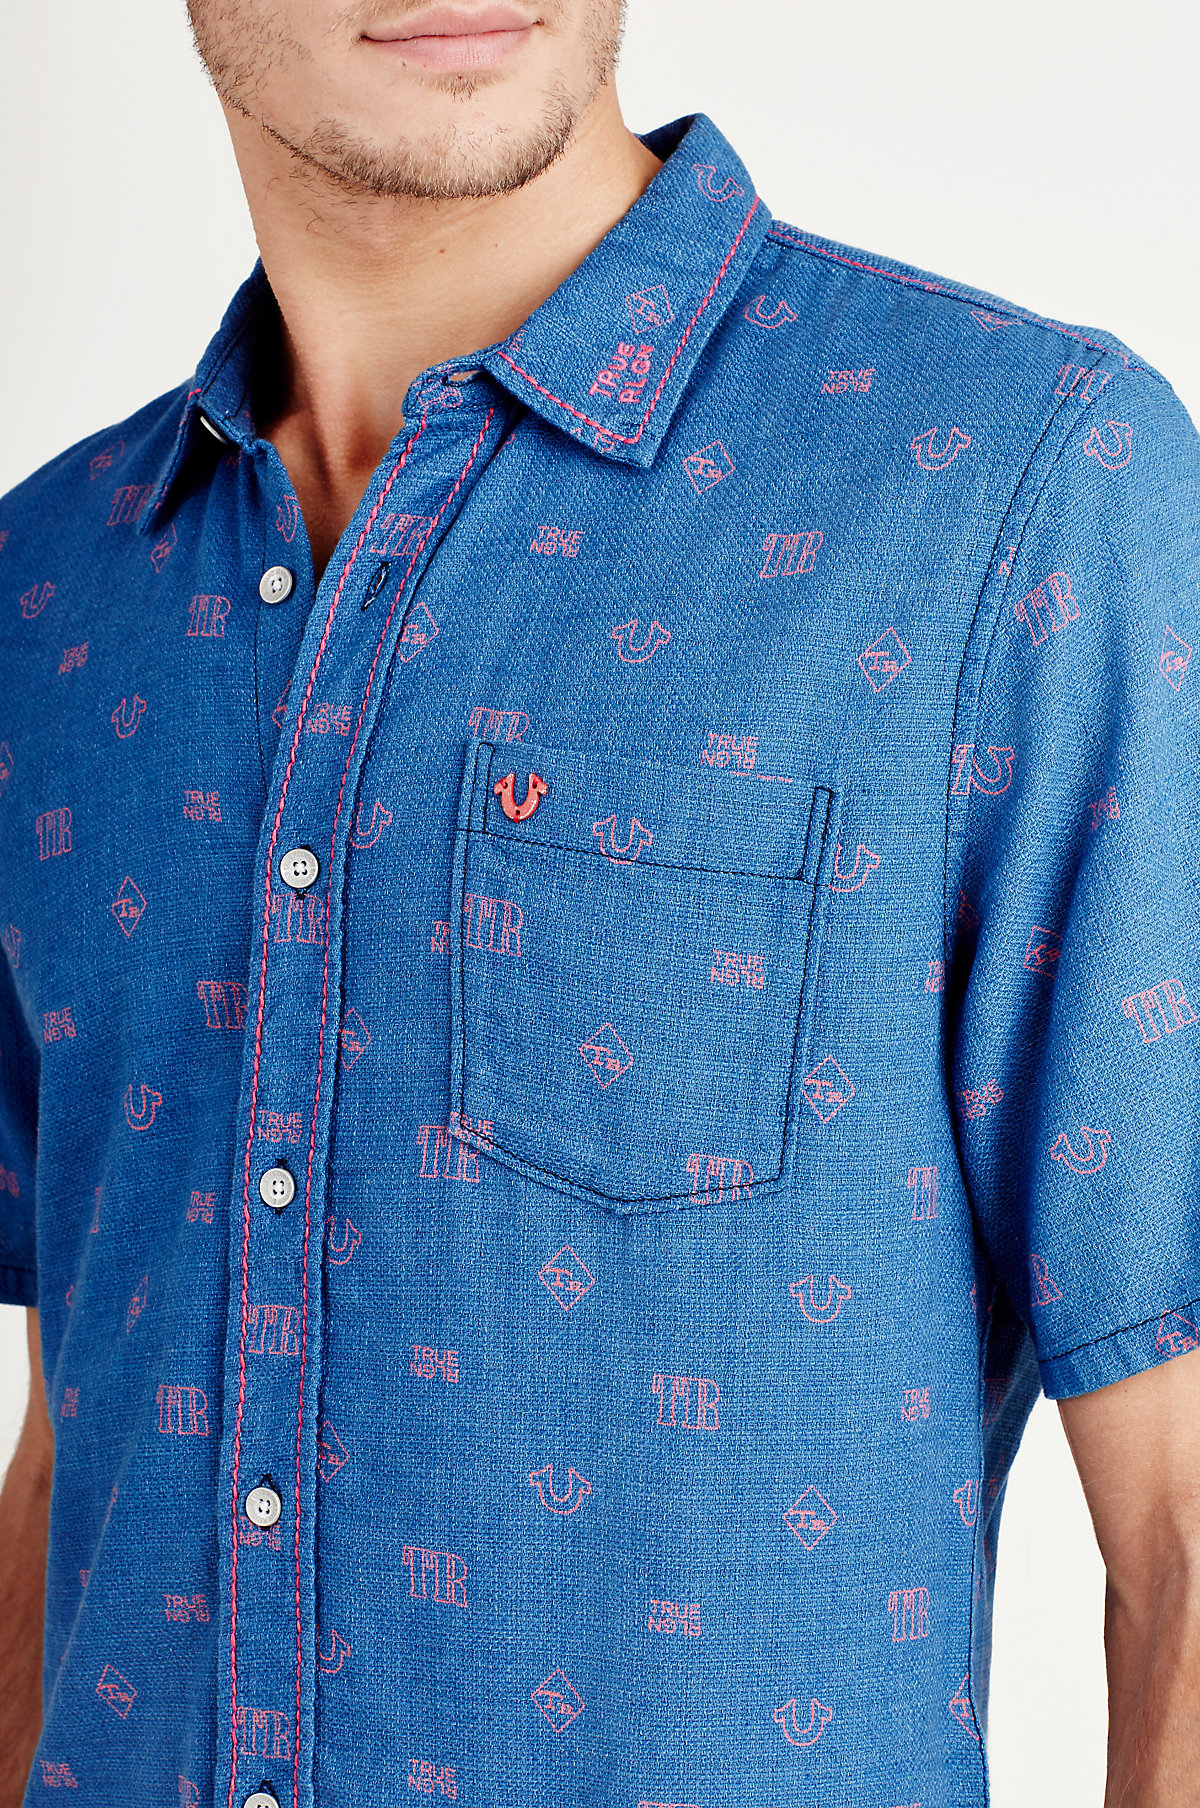 True-Religion-Men-039-s-Short-Sleeve-Button-Up-Woven-Shirt thumbnail 5